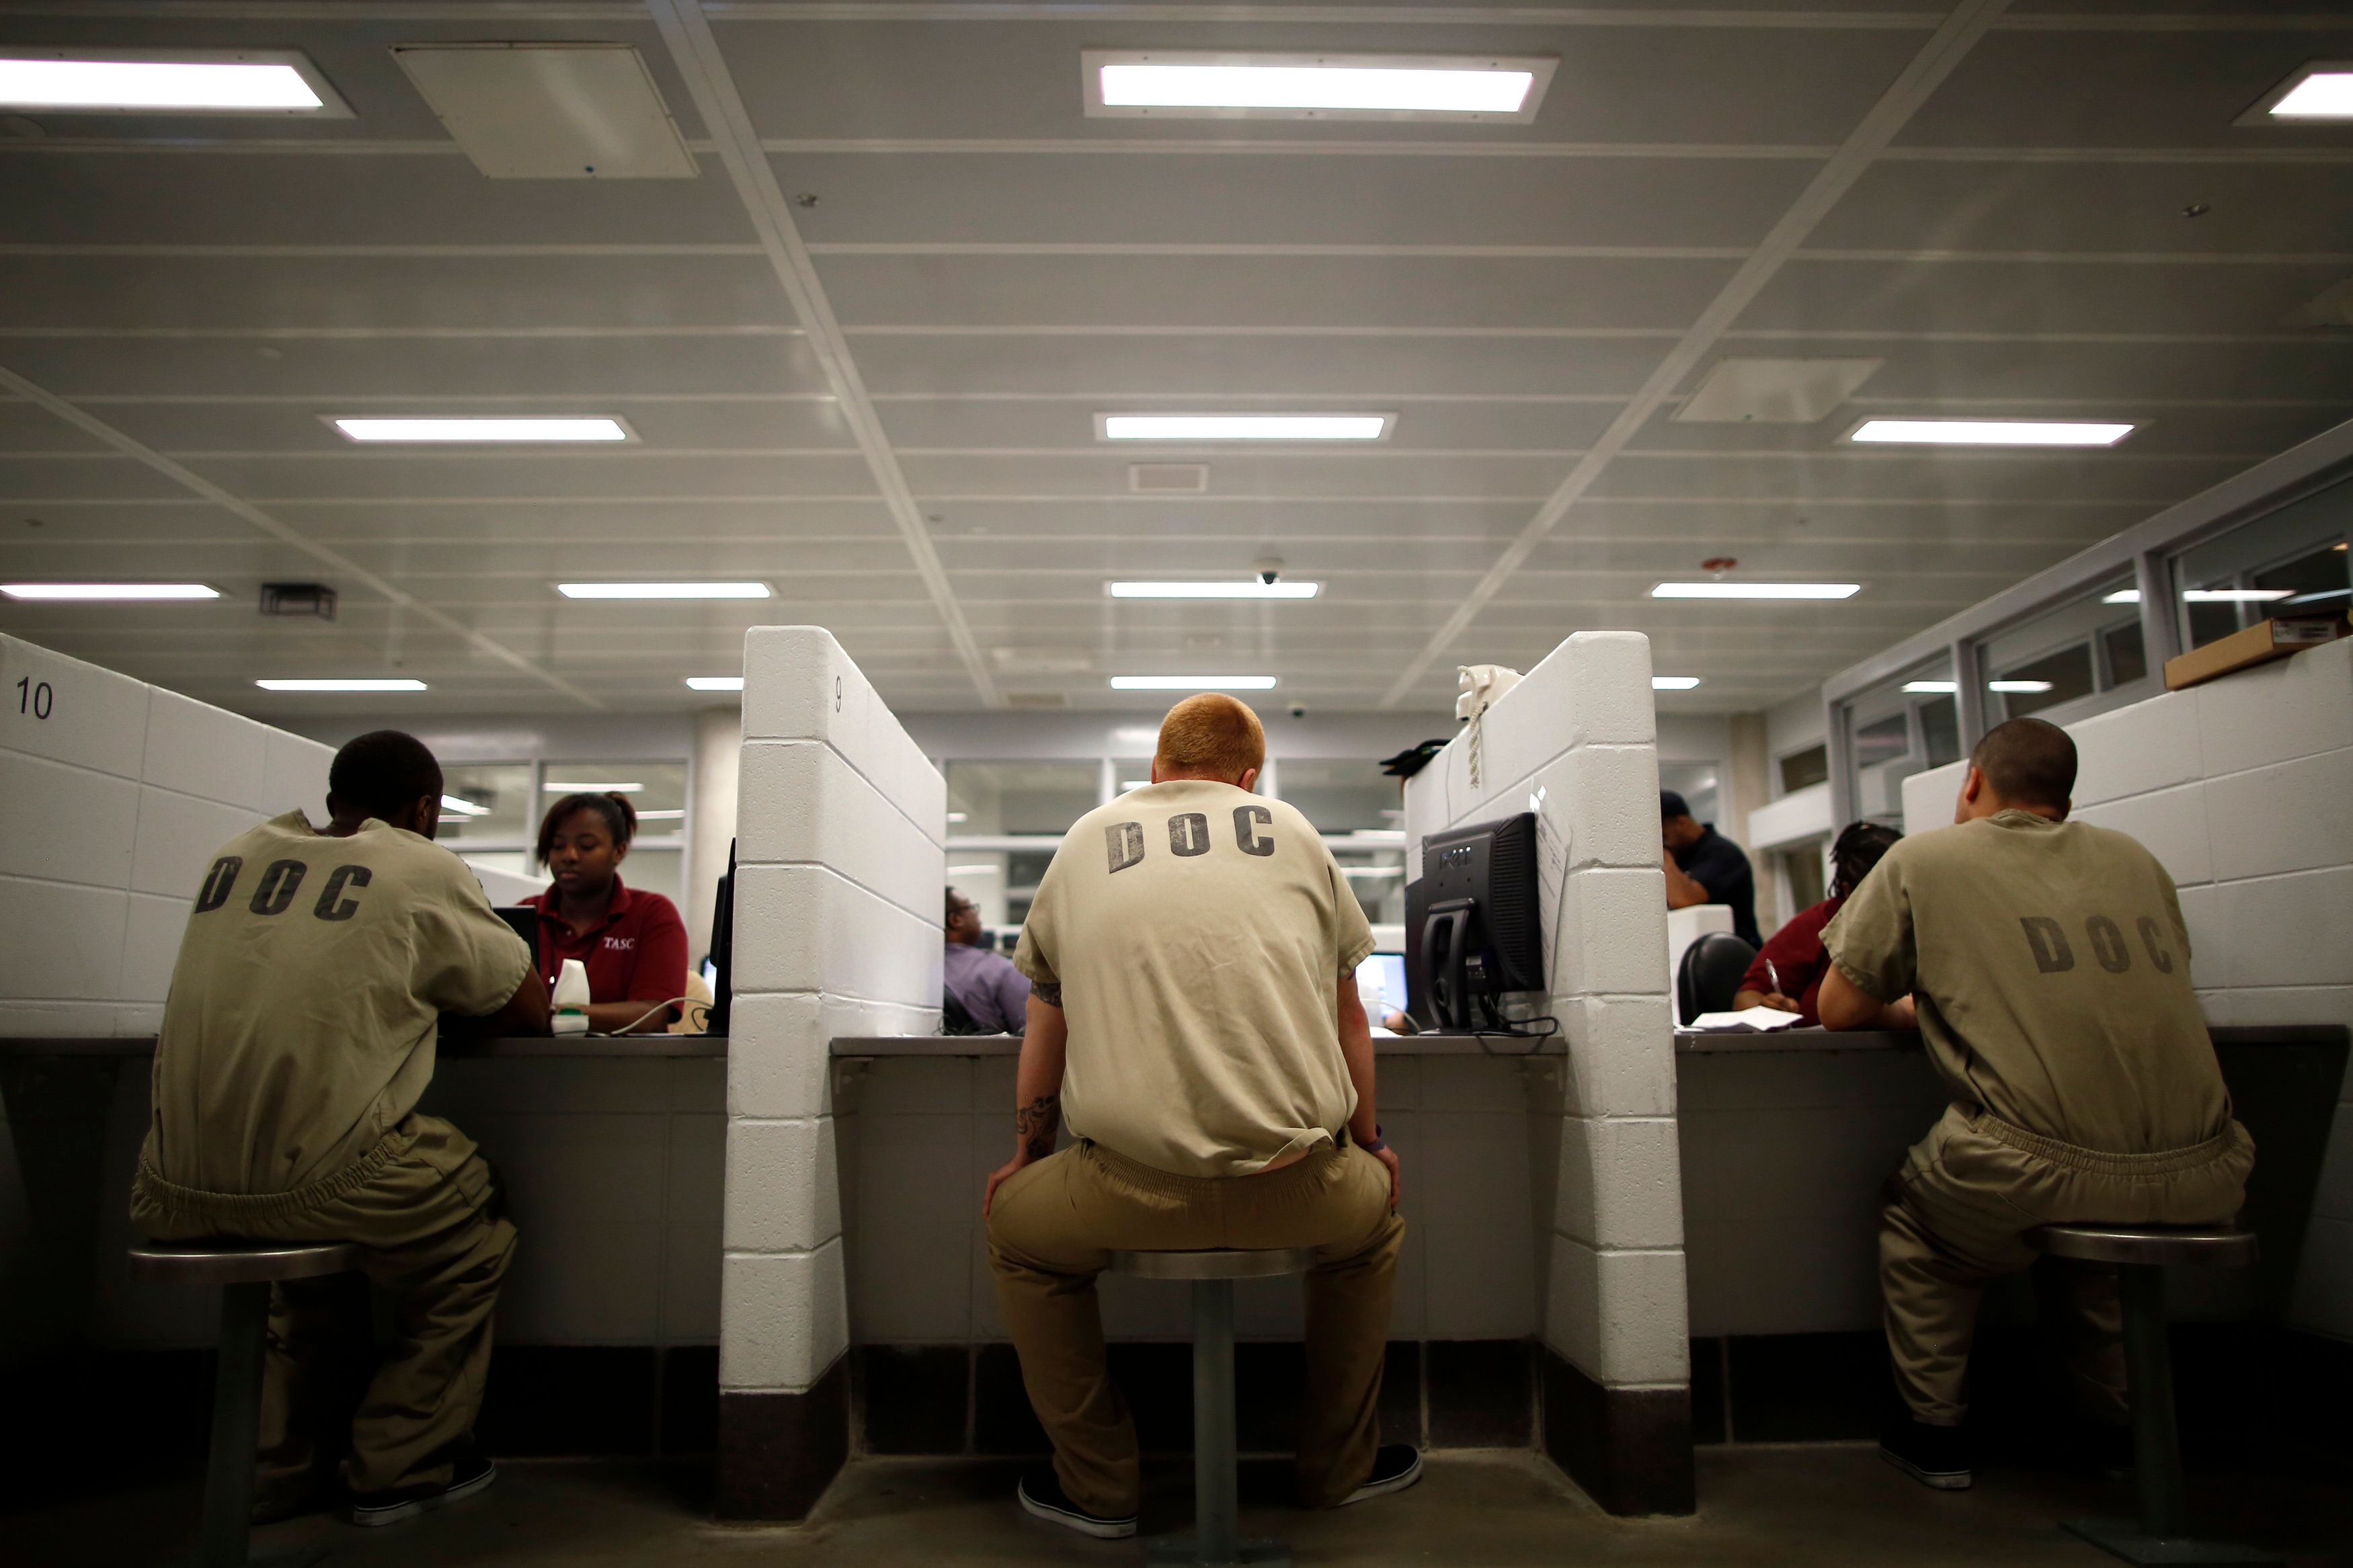 Inmates are processed at the Cook County Jail in Chicago, Illinois, May 20, 2014. More than 5,000 jail inmates have signed up for Medicaid under a program that lets them apply while incarcerated. Picture taken May 20, 2014. REUTERS/Jim Young (UNITED STATES - Tags: HEALTH)